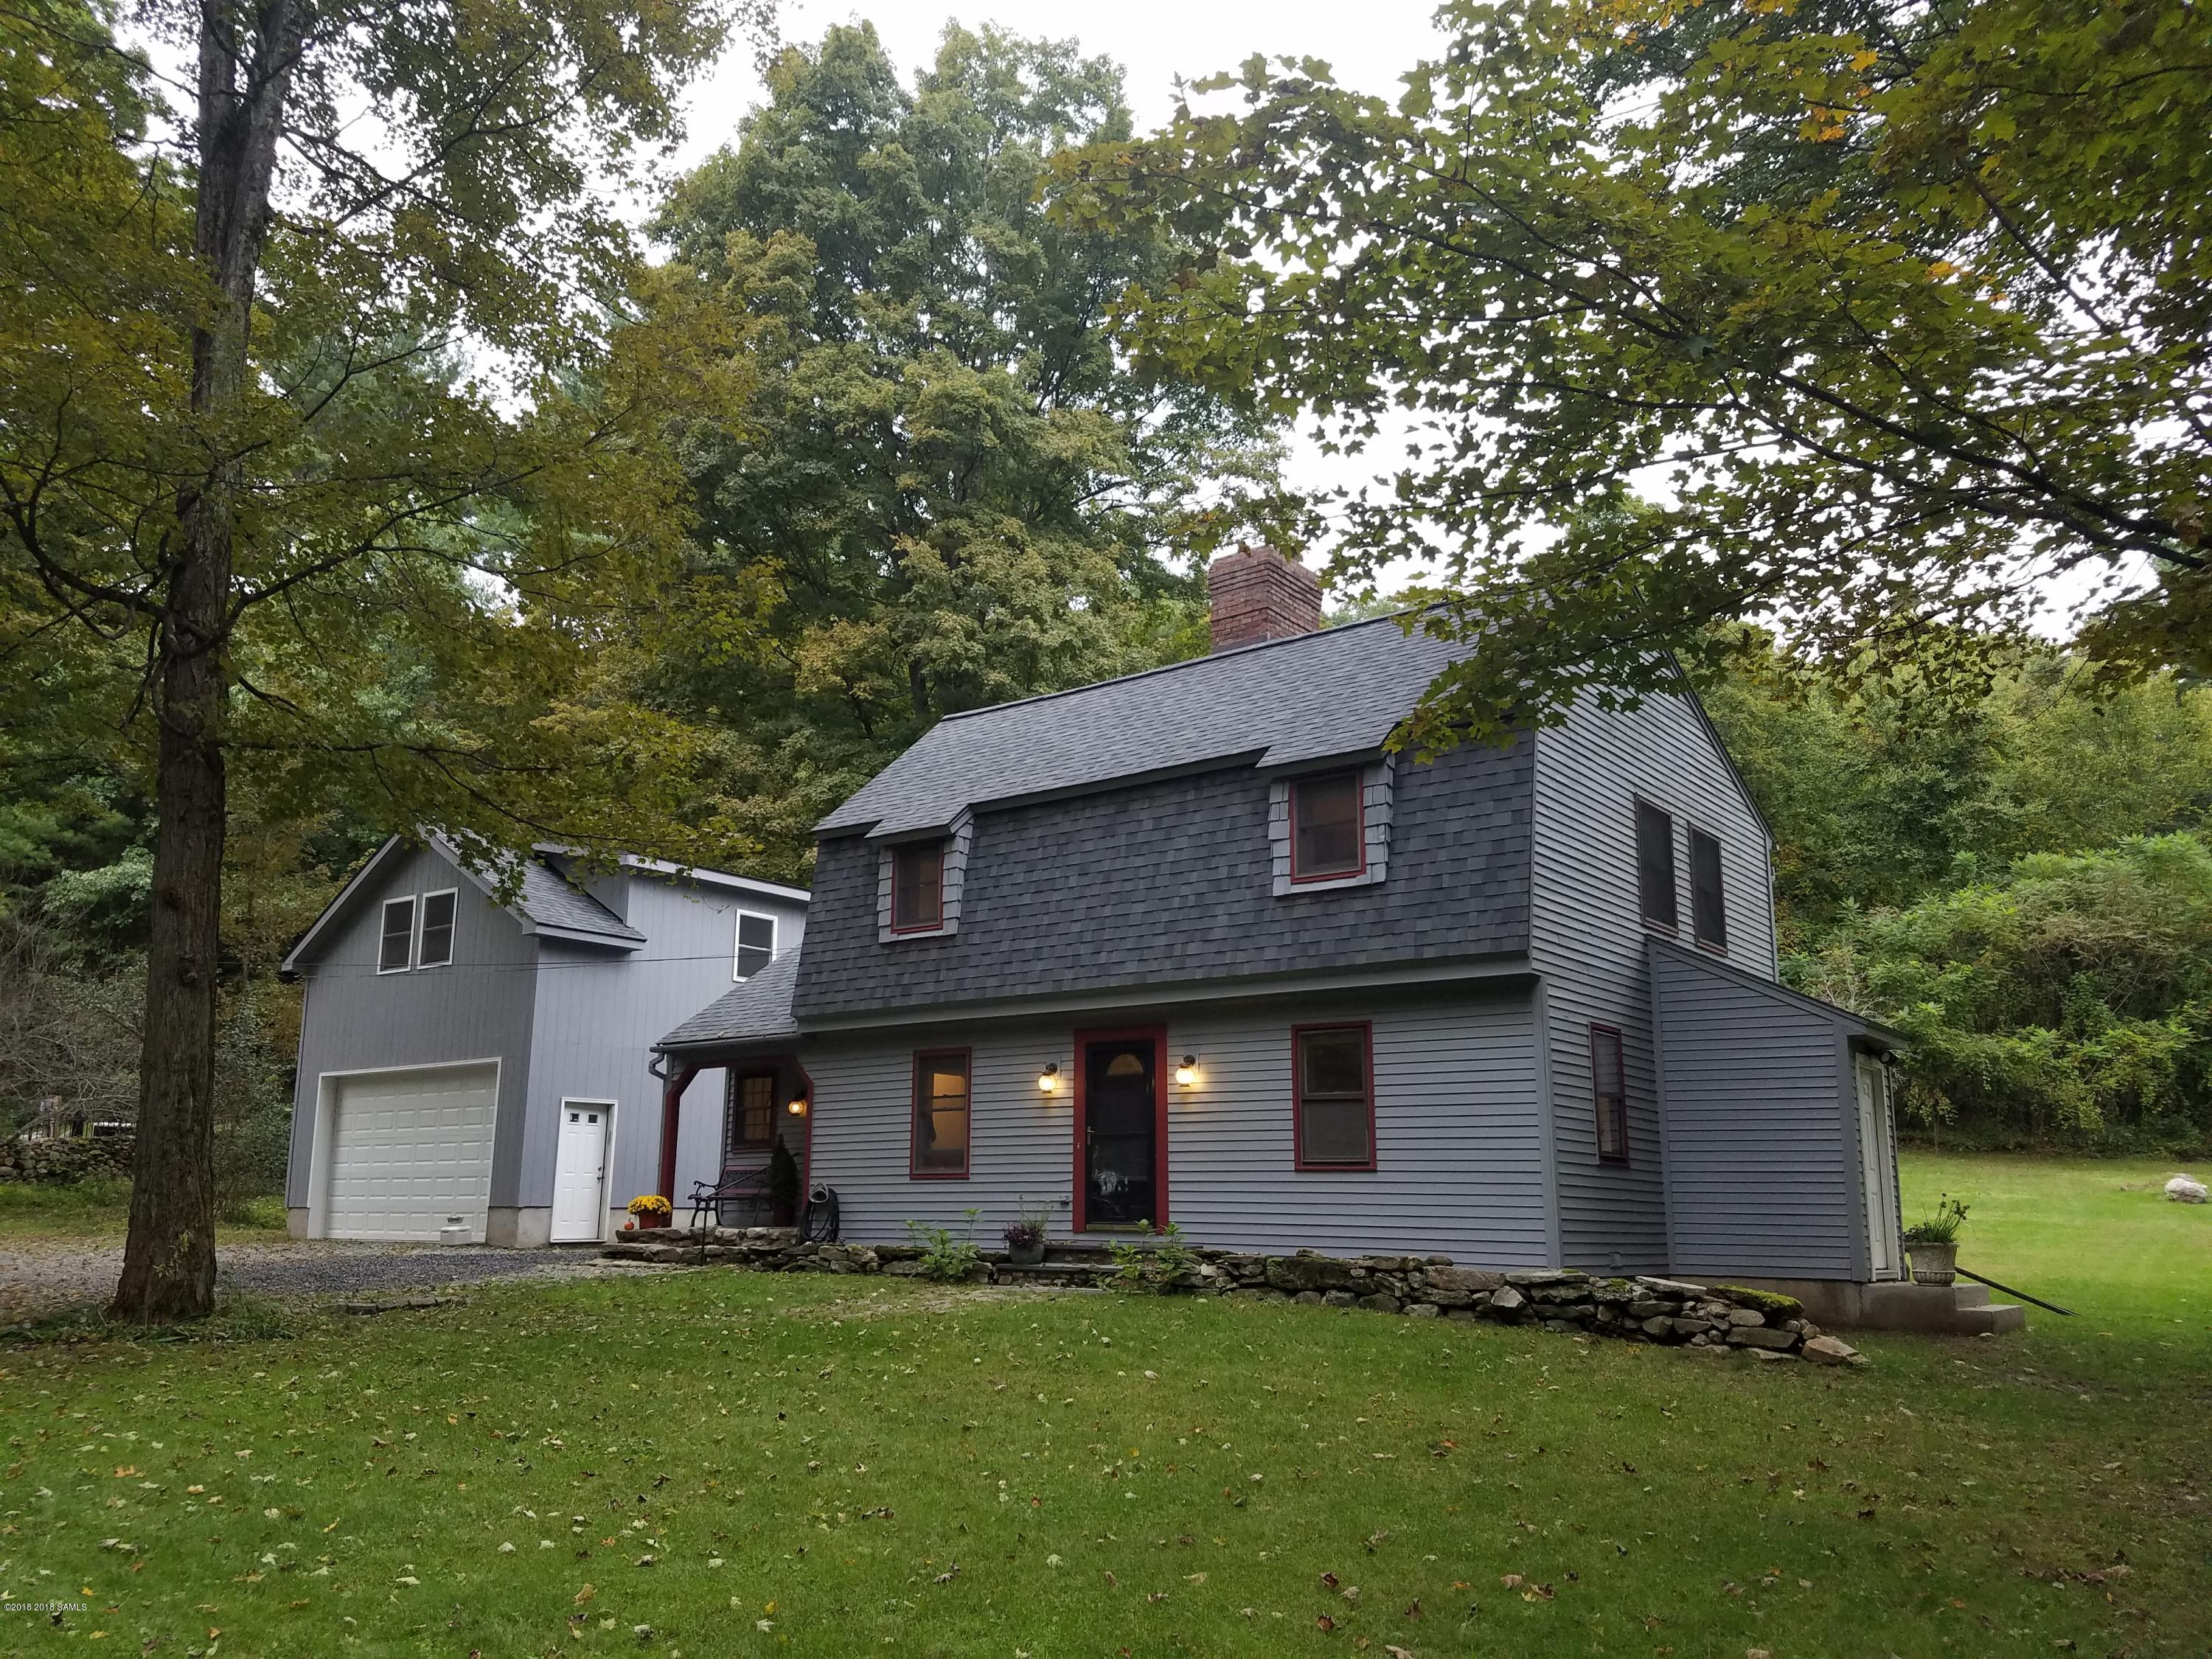 331 Daniels Road, Saratoga Springs NY 12866 photo 1